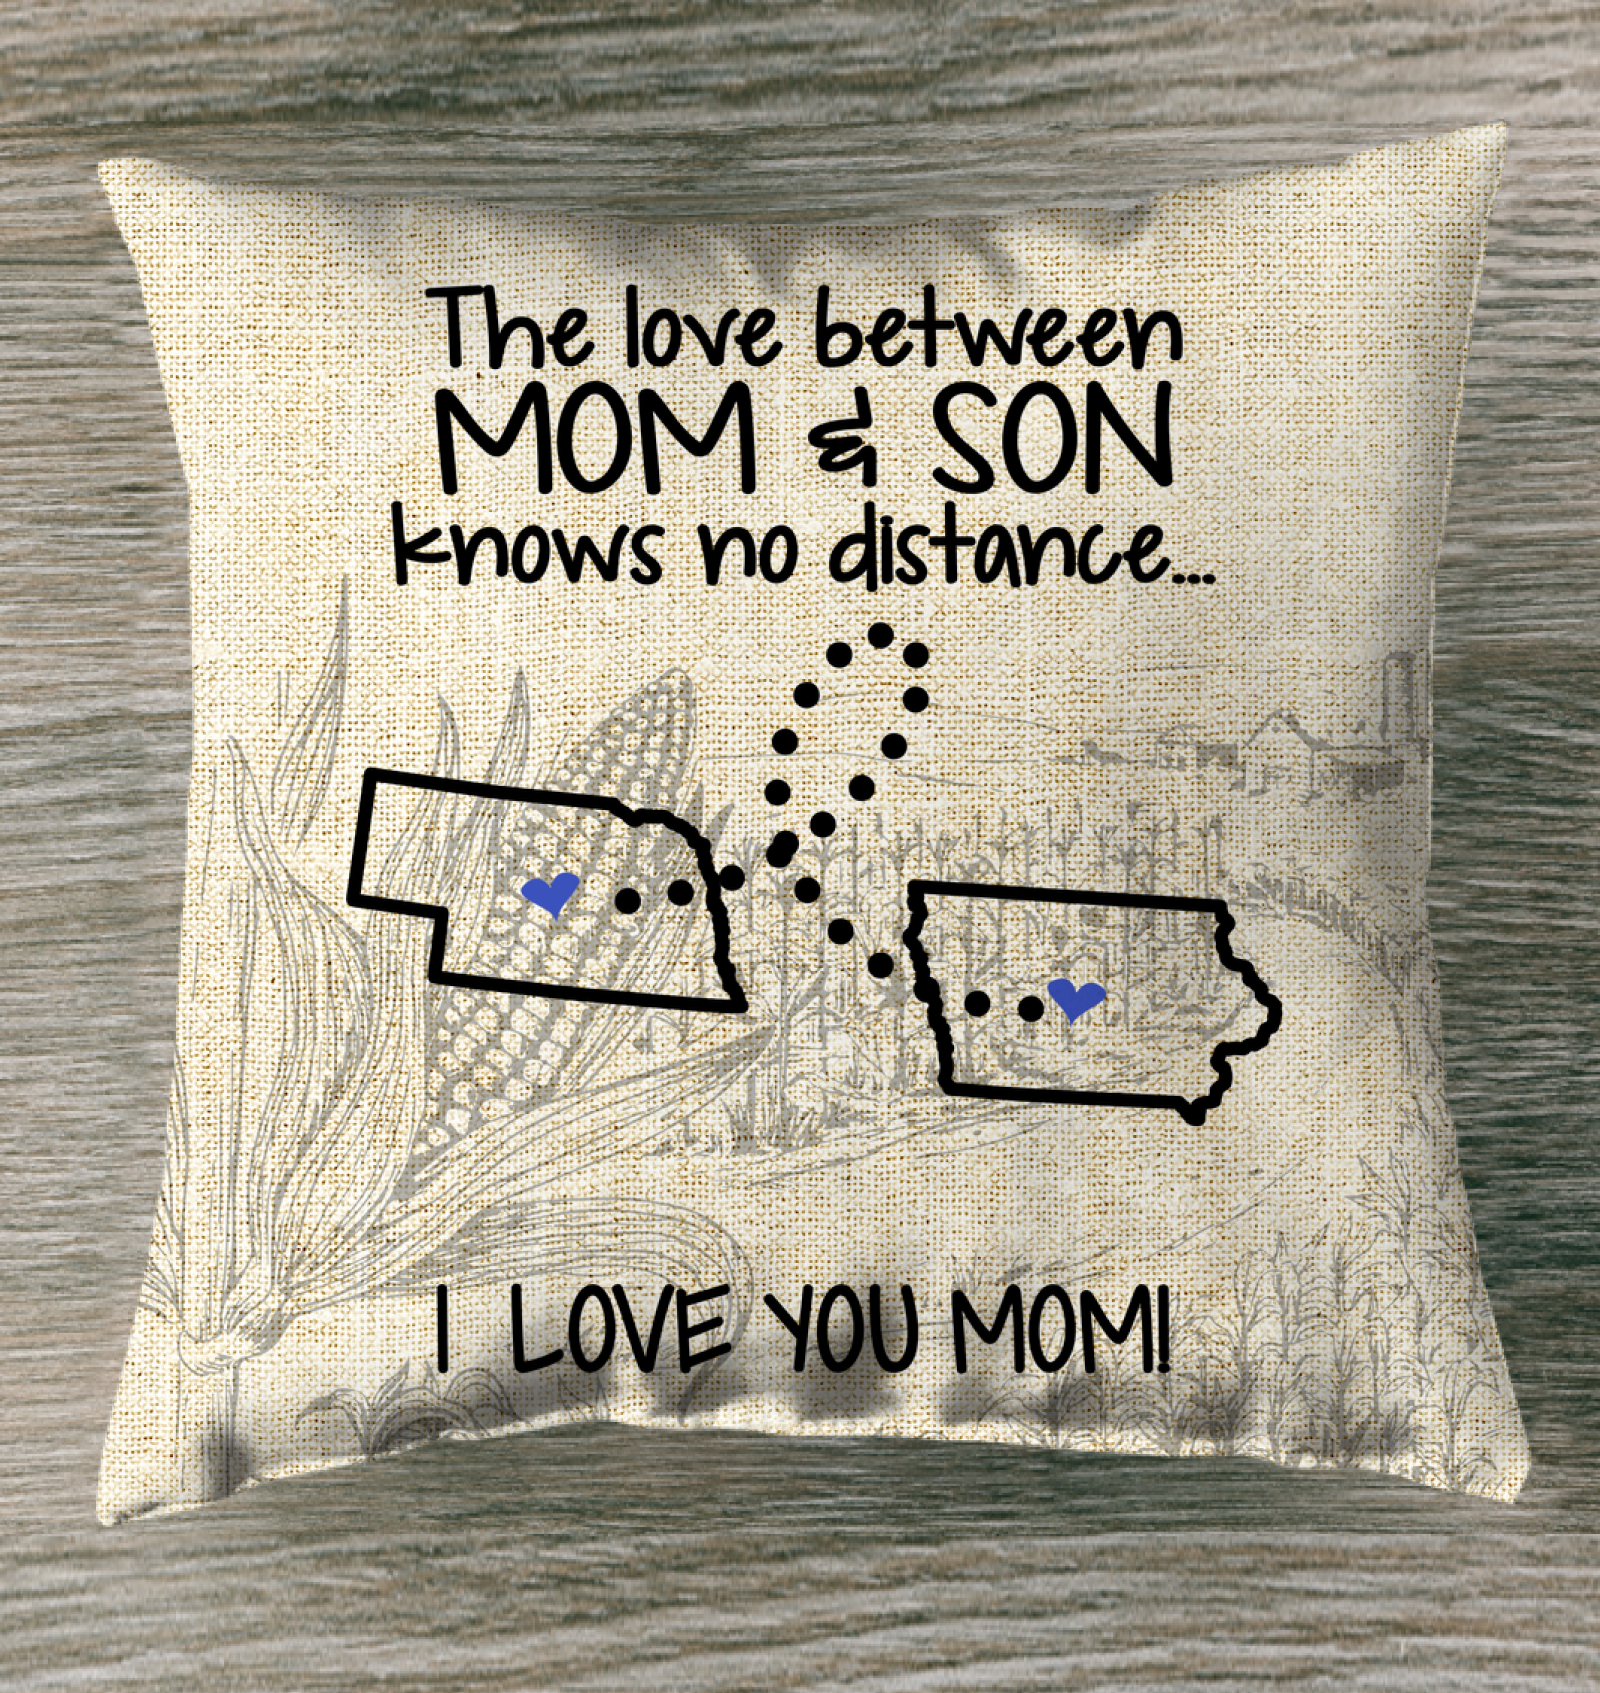 IOWA NEBRASKA THE LOVE BETWEEN MOM AND SON